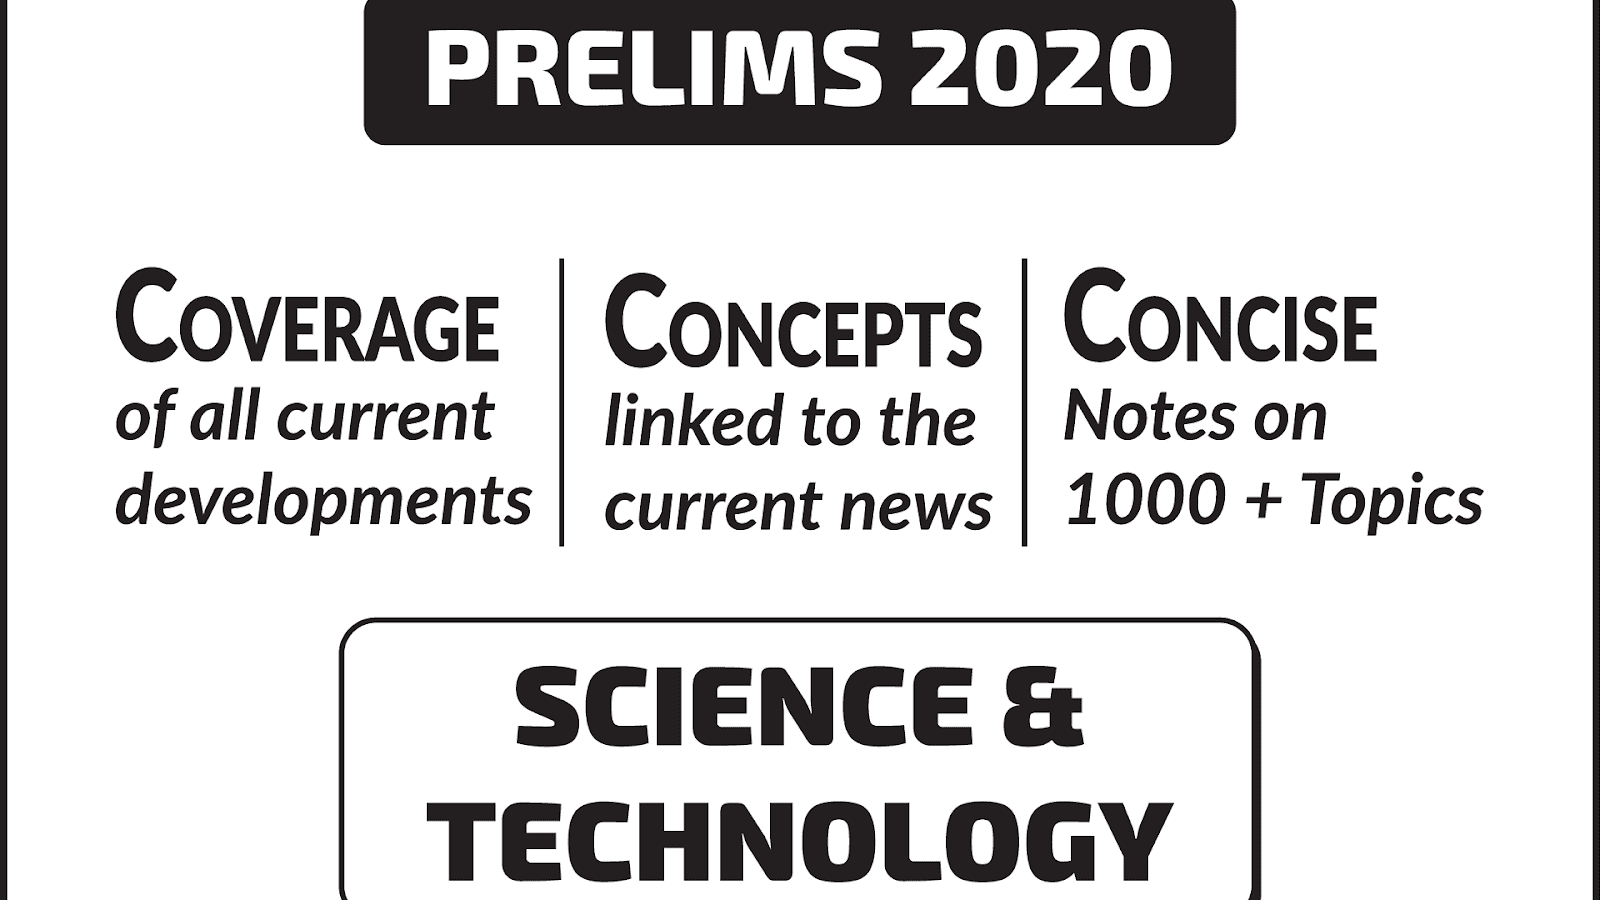 Science Technology UPSC CSE Material